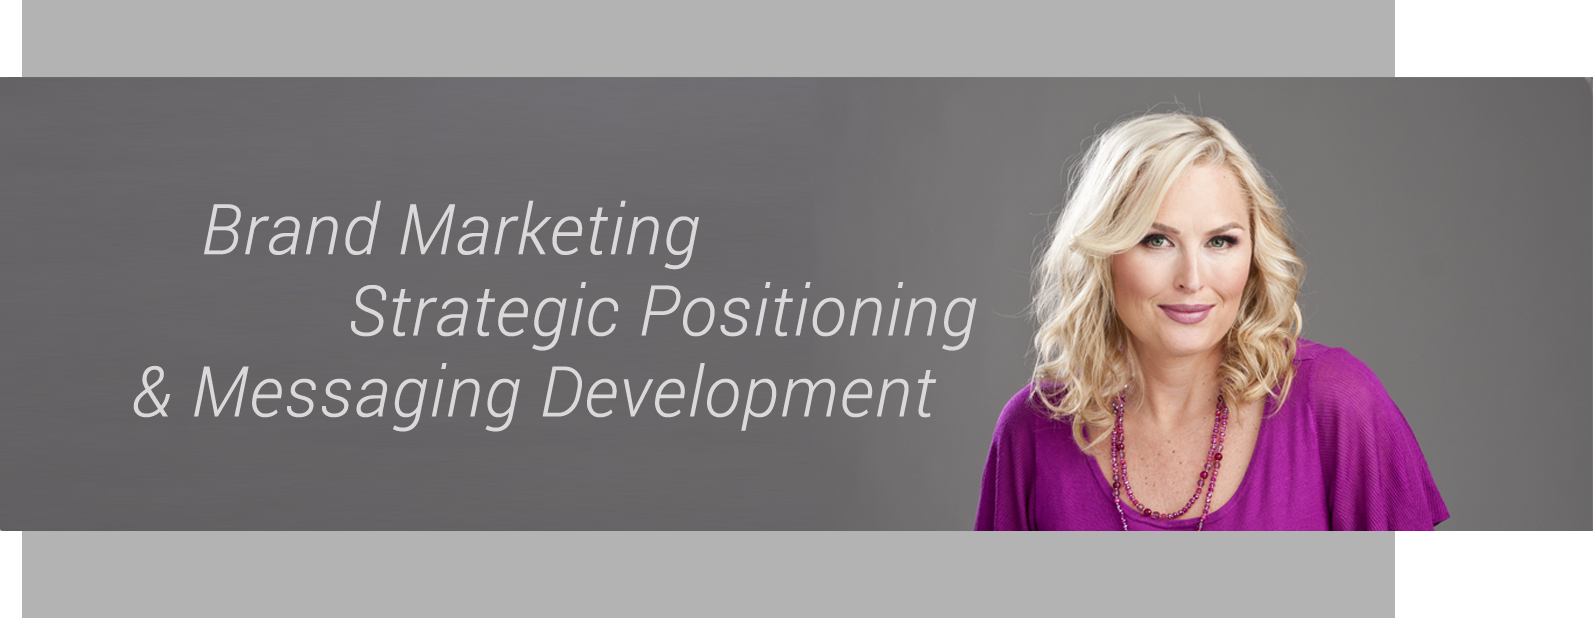 Brand Marketing & Strategic Positioning